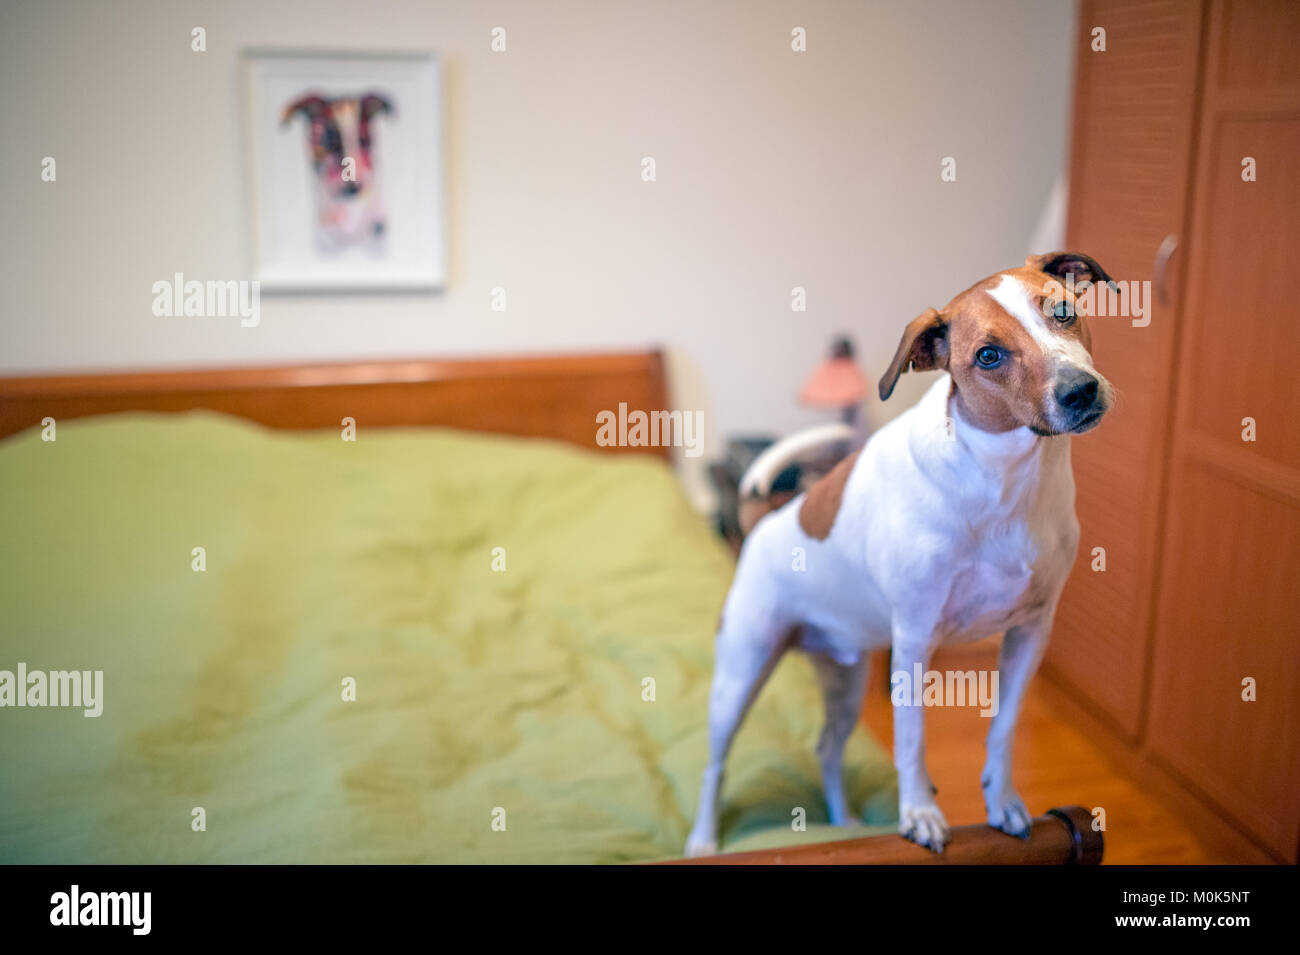 Six-year-old Danish Swedish Farmdog posing in a bedroom in front of his portrait. - Stock Image